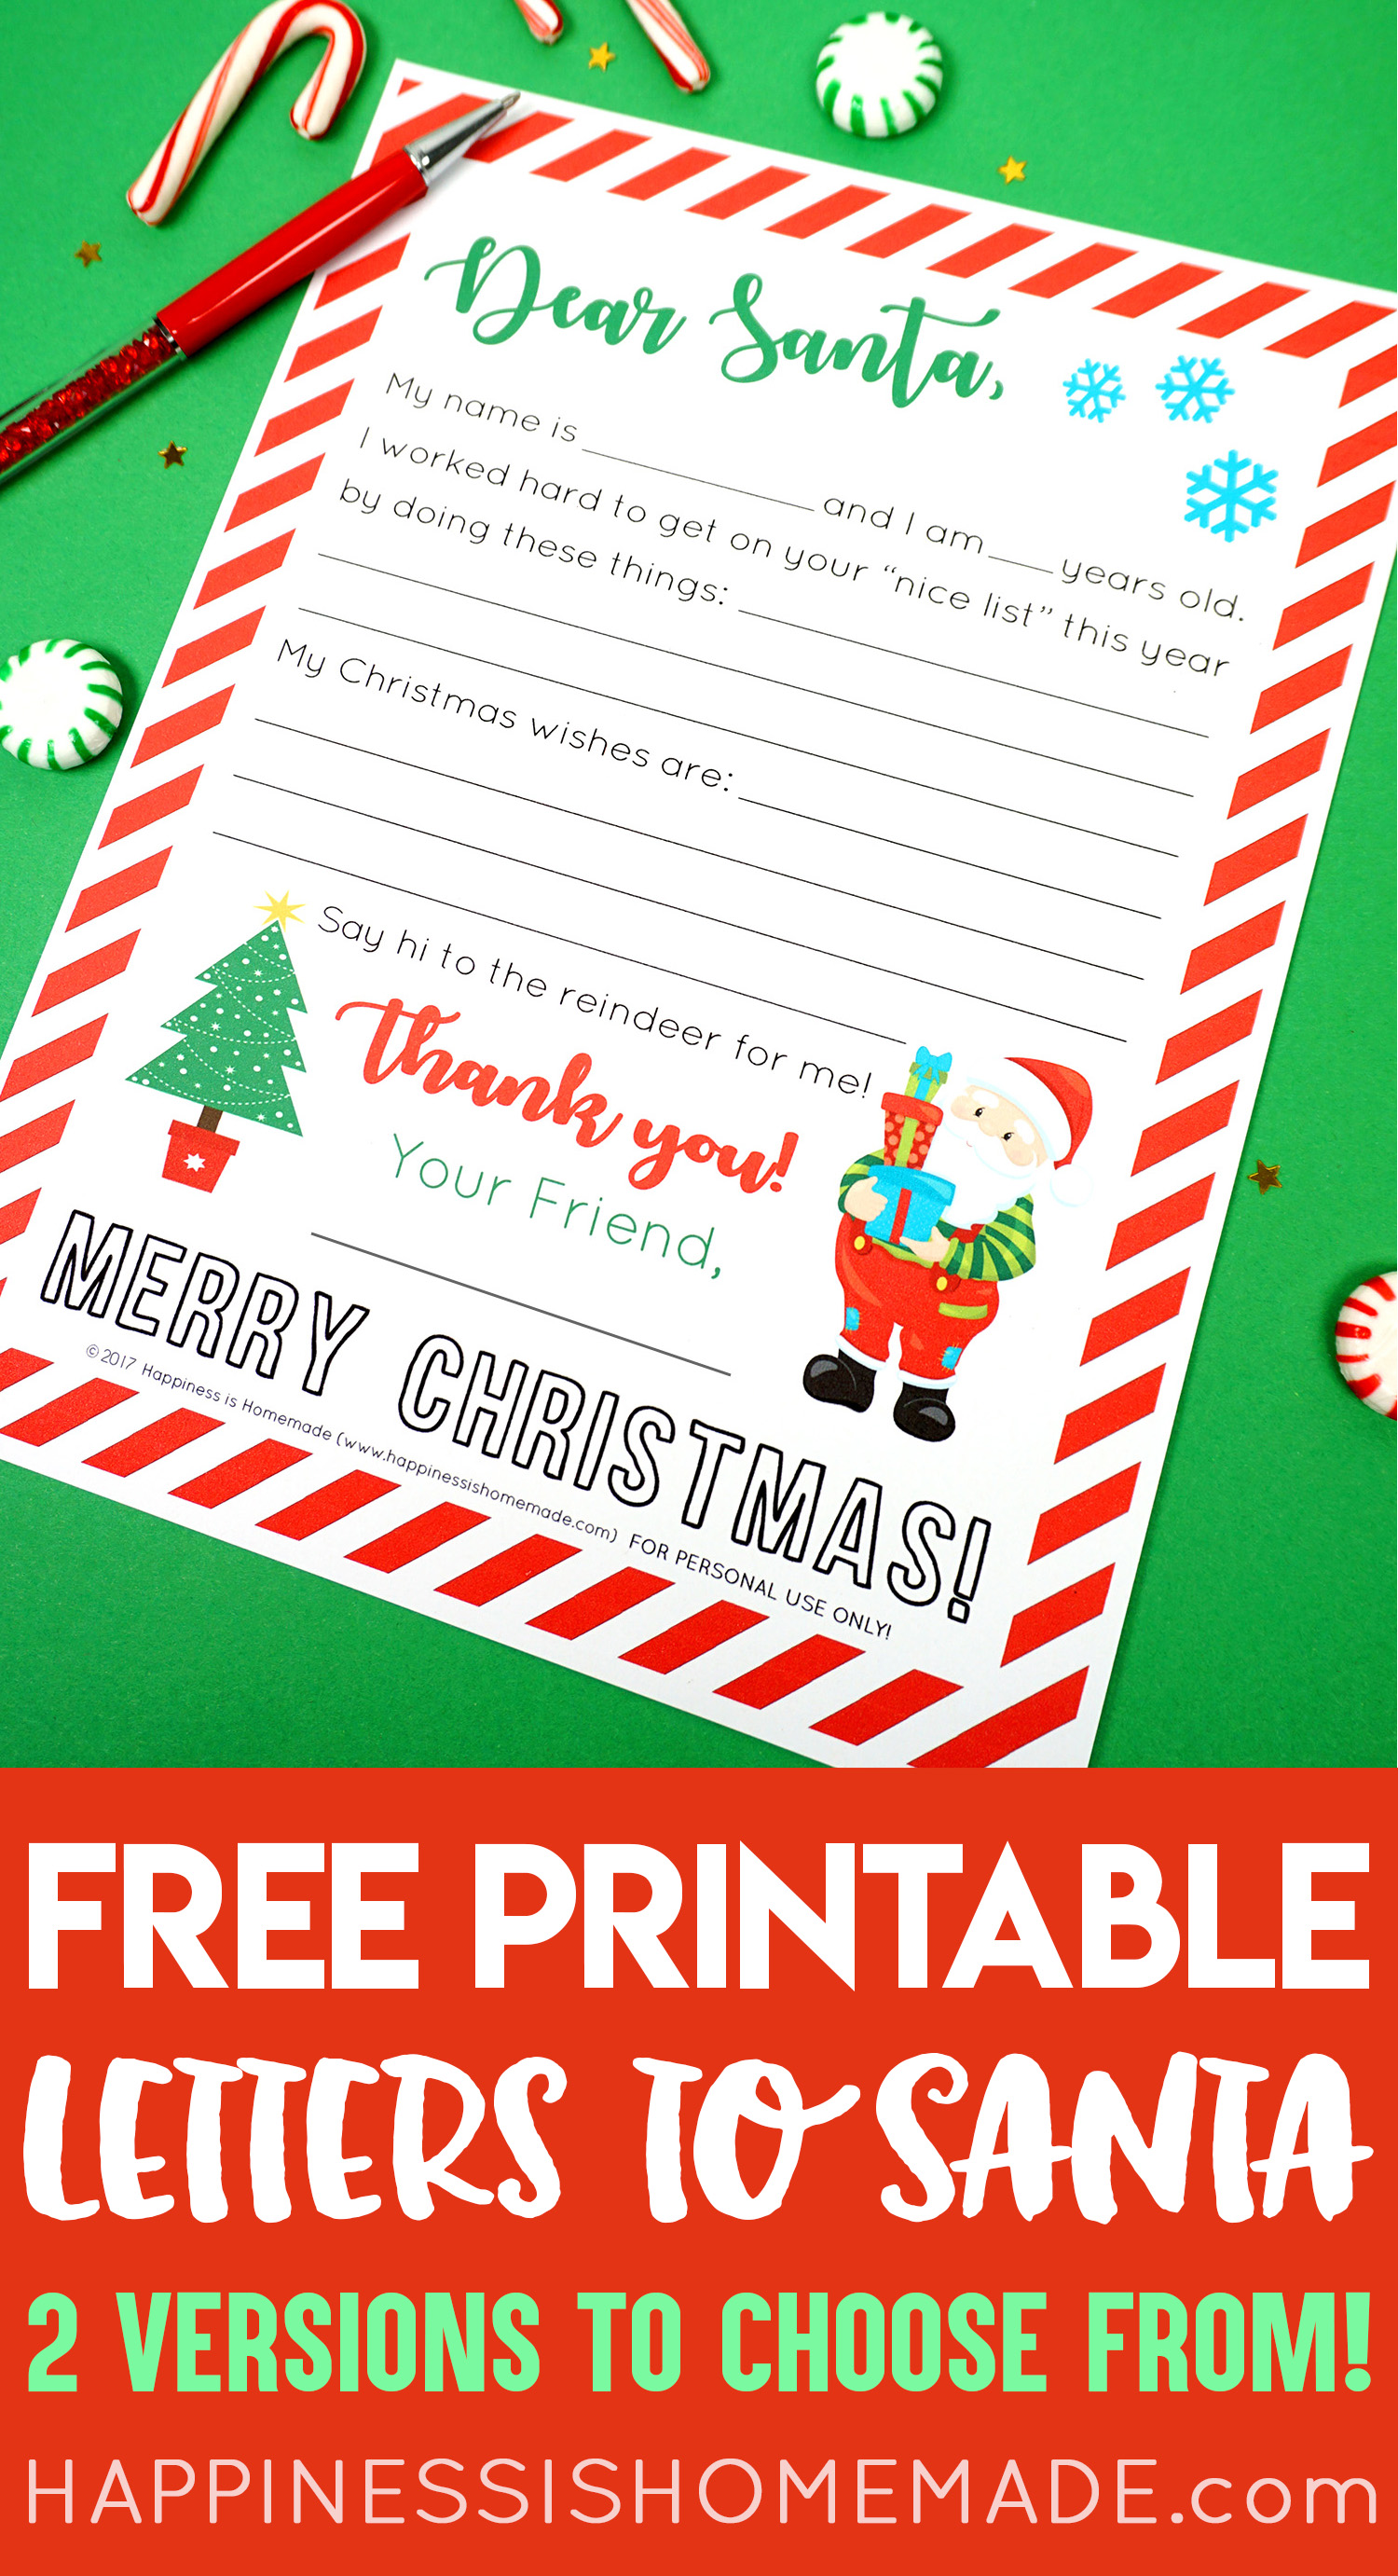 picture relating to Free Printable Letter From Santa Template known as Free of charge Printable Letter in direction of Santa - Joy is Home made